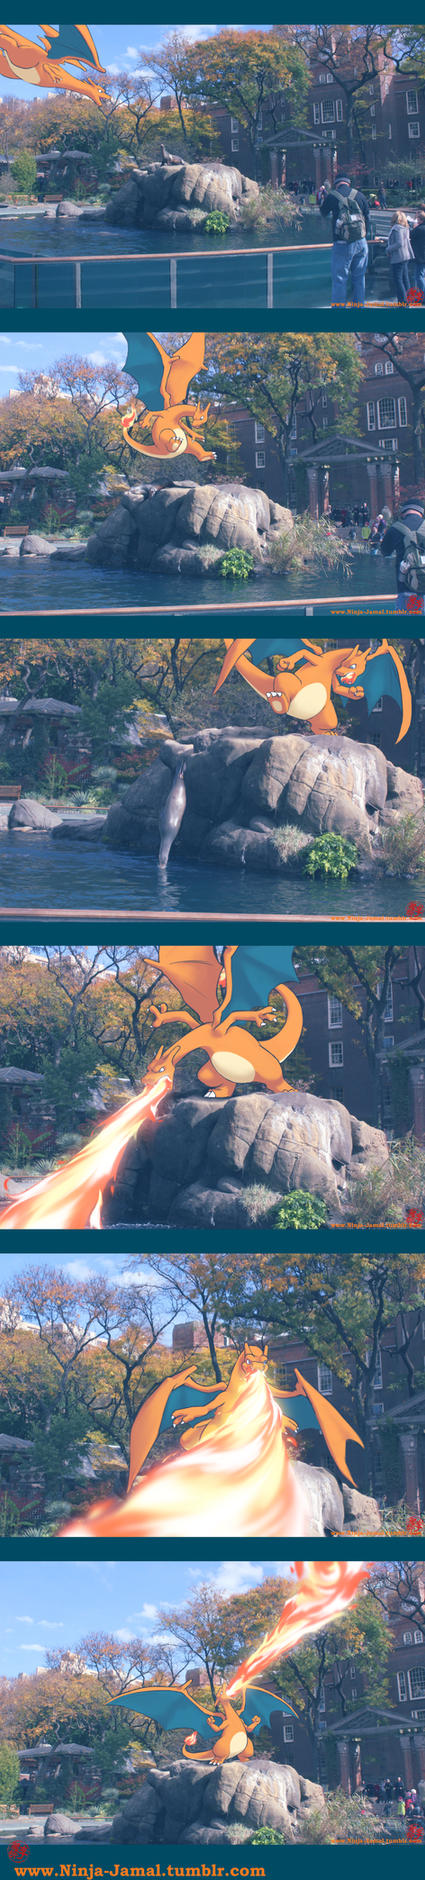 Wild CHarizard in NY by Ninja-Jamal